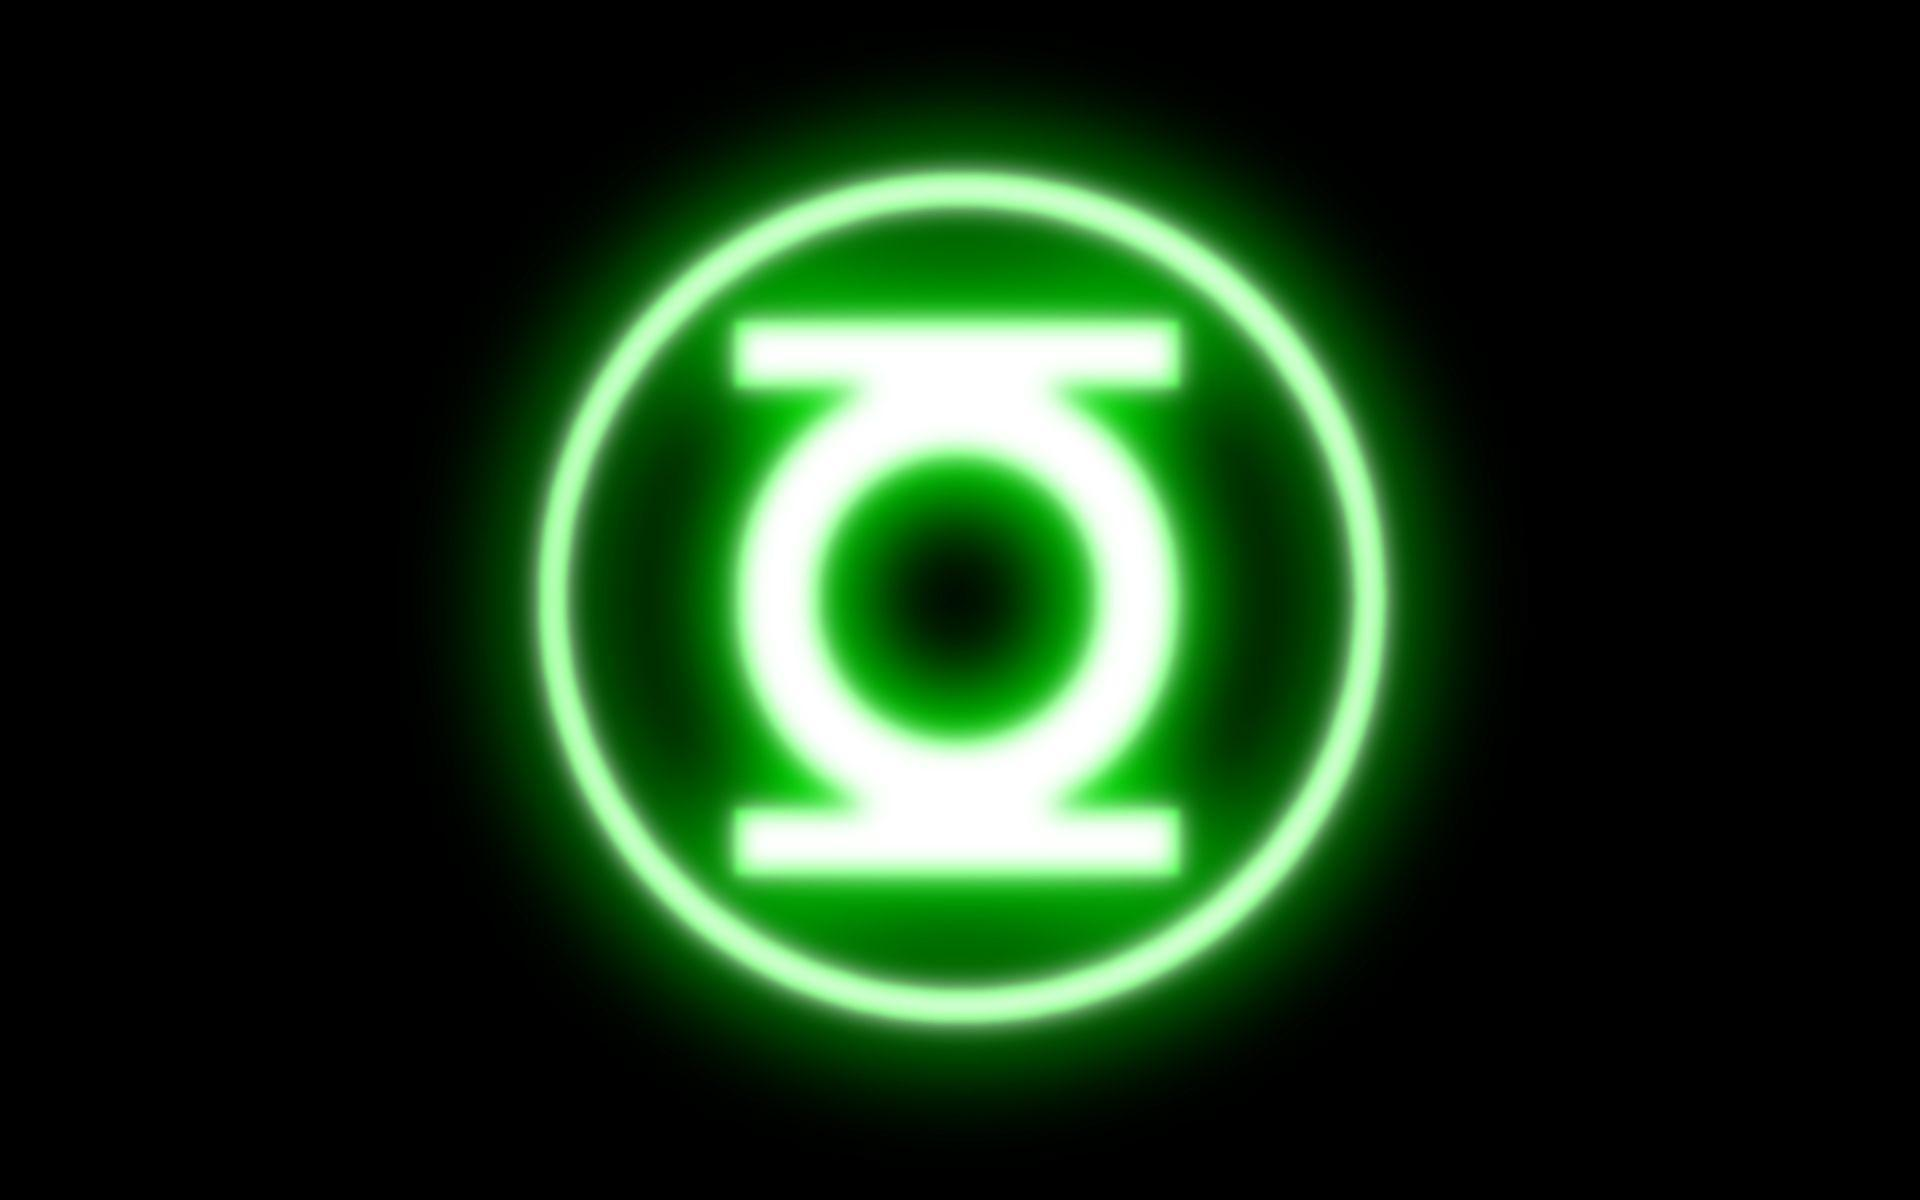 Green Lantern Logo Wallpapers HD - Wallpaper Cave